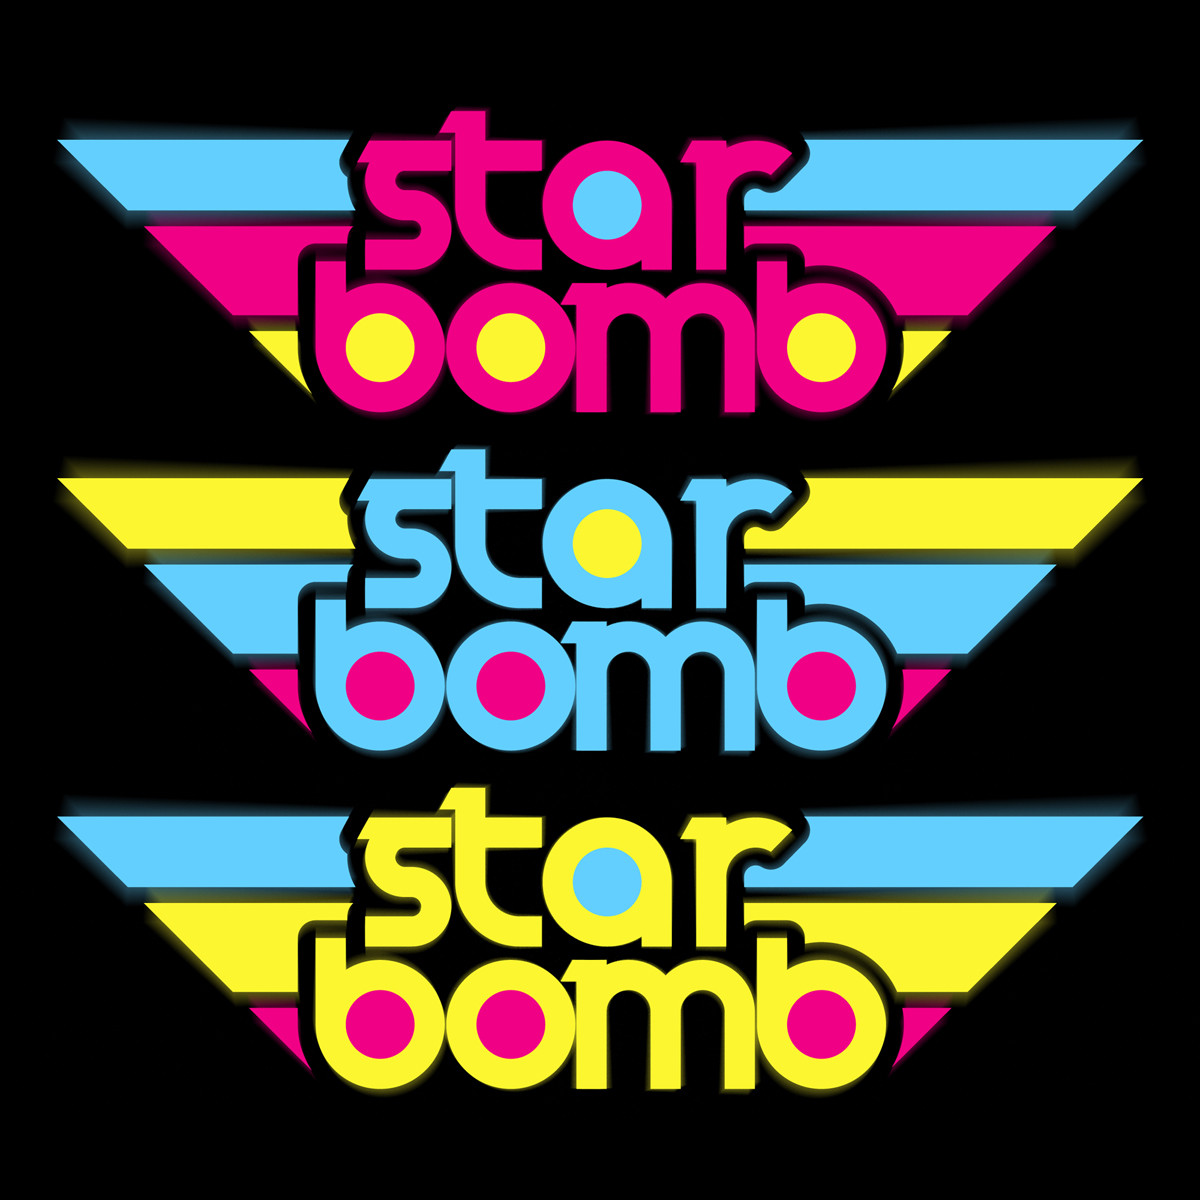 Starbomb - (Self Titled Album) (2013)